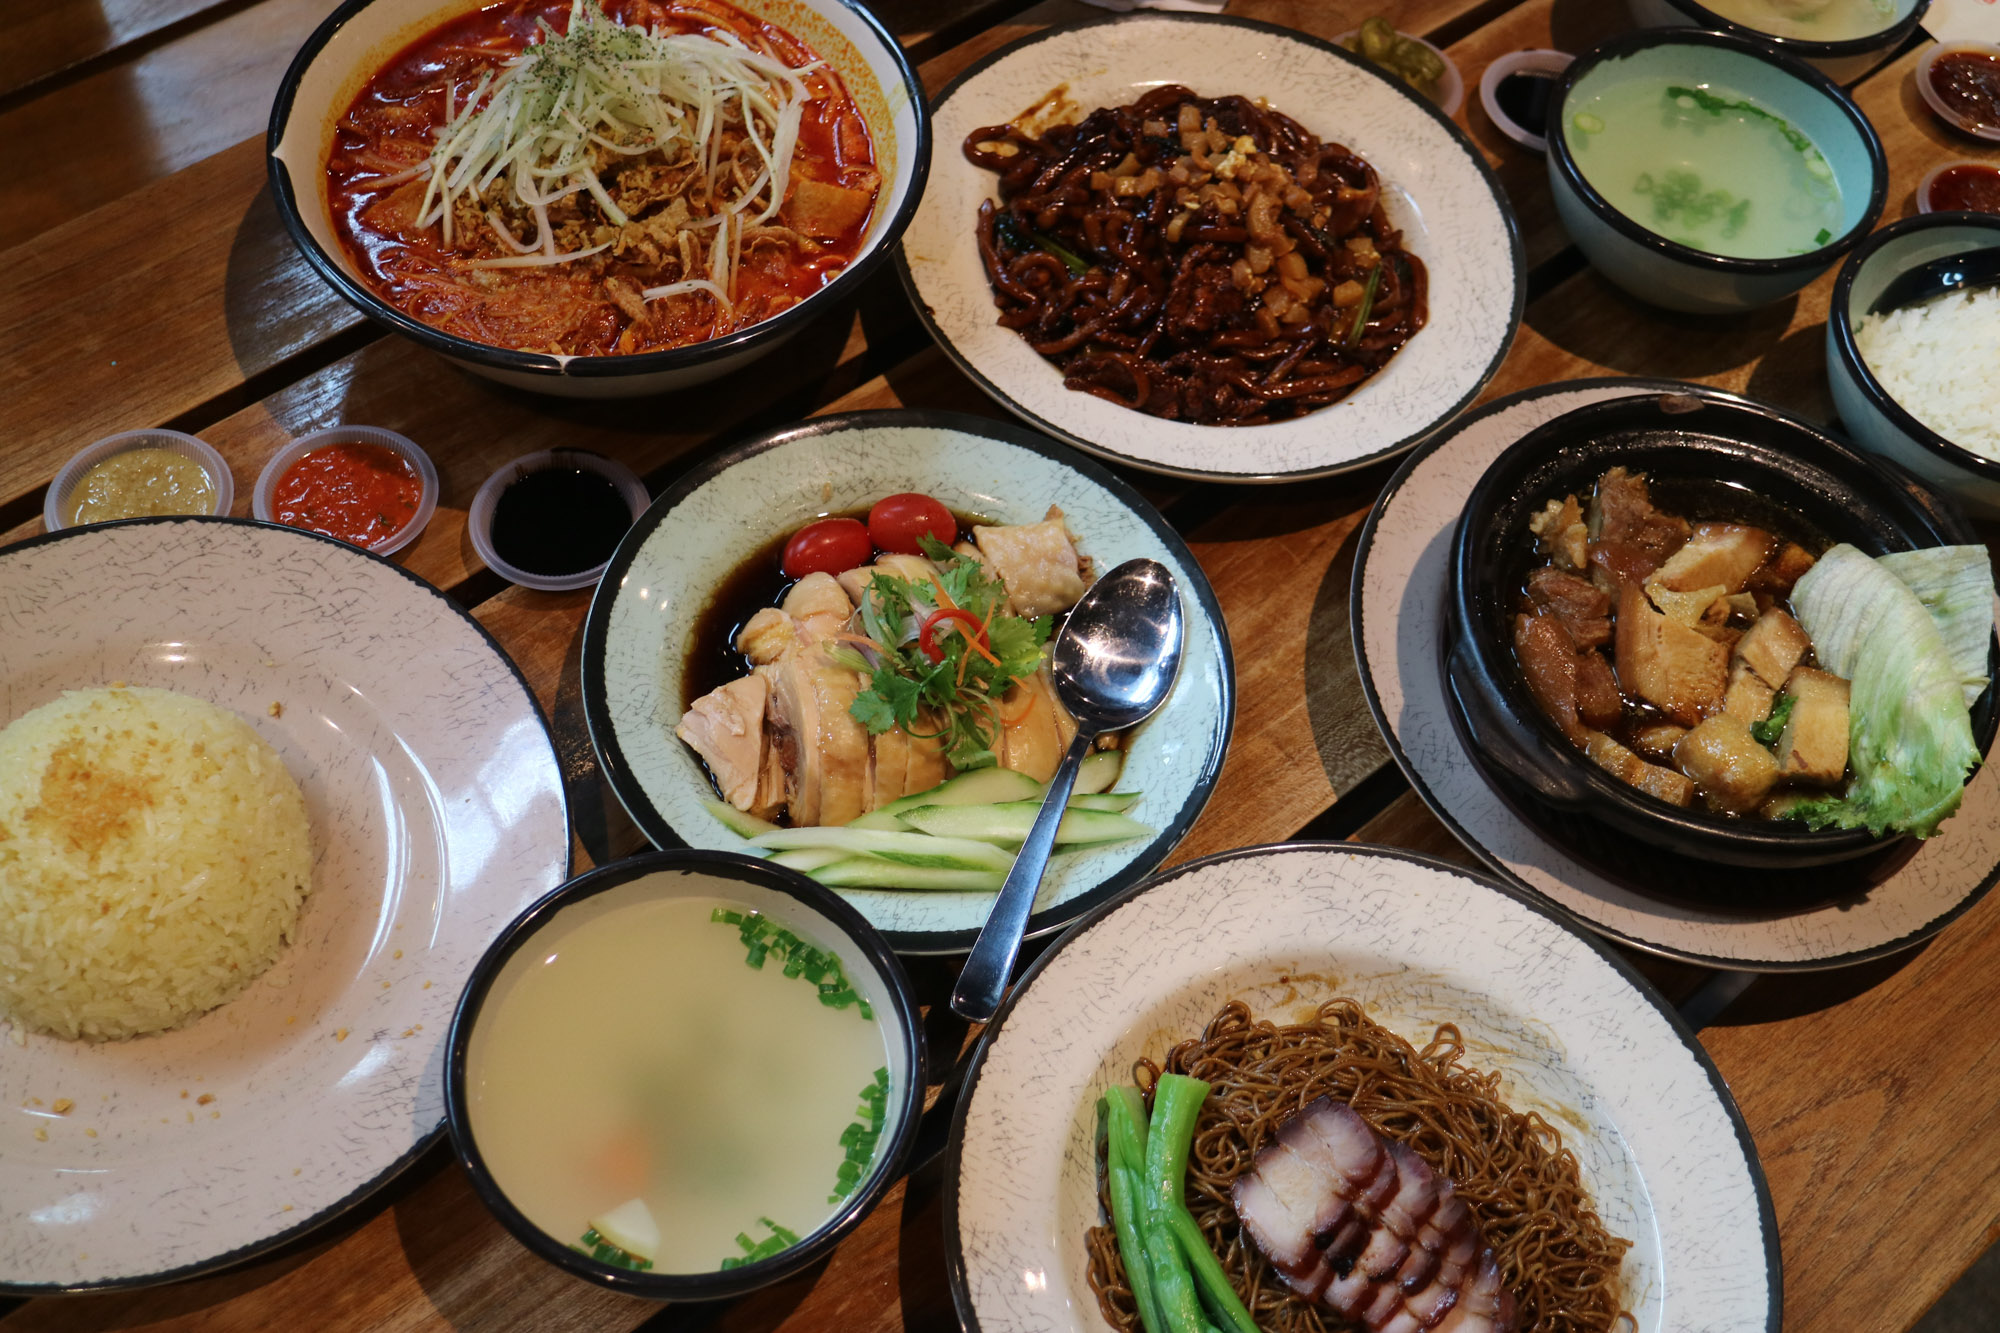 resortsworldgenting-malaysia-food-street-darrenbloggie